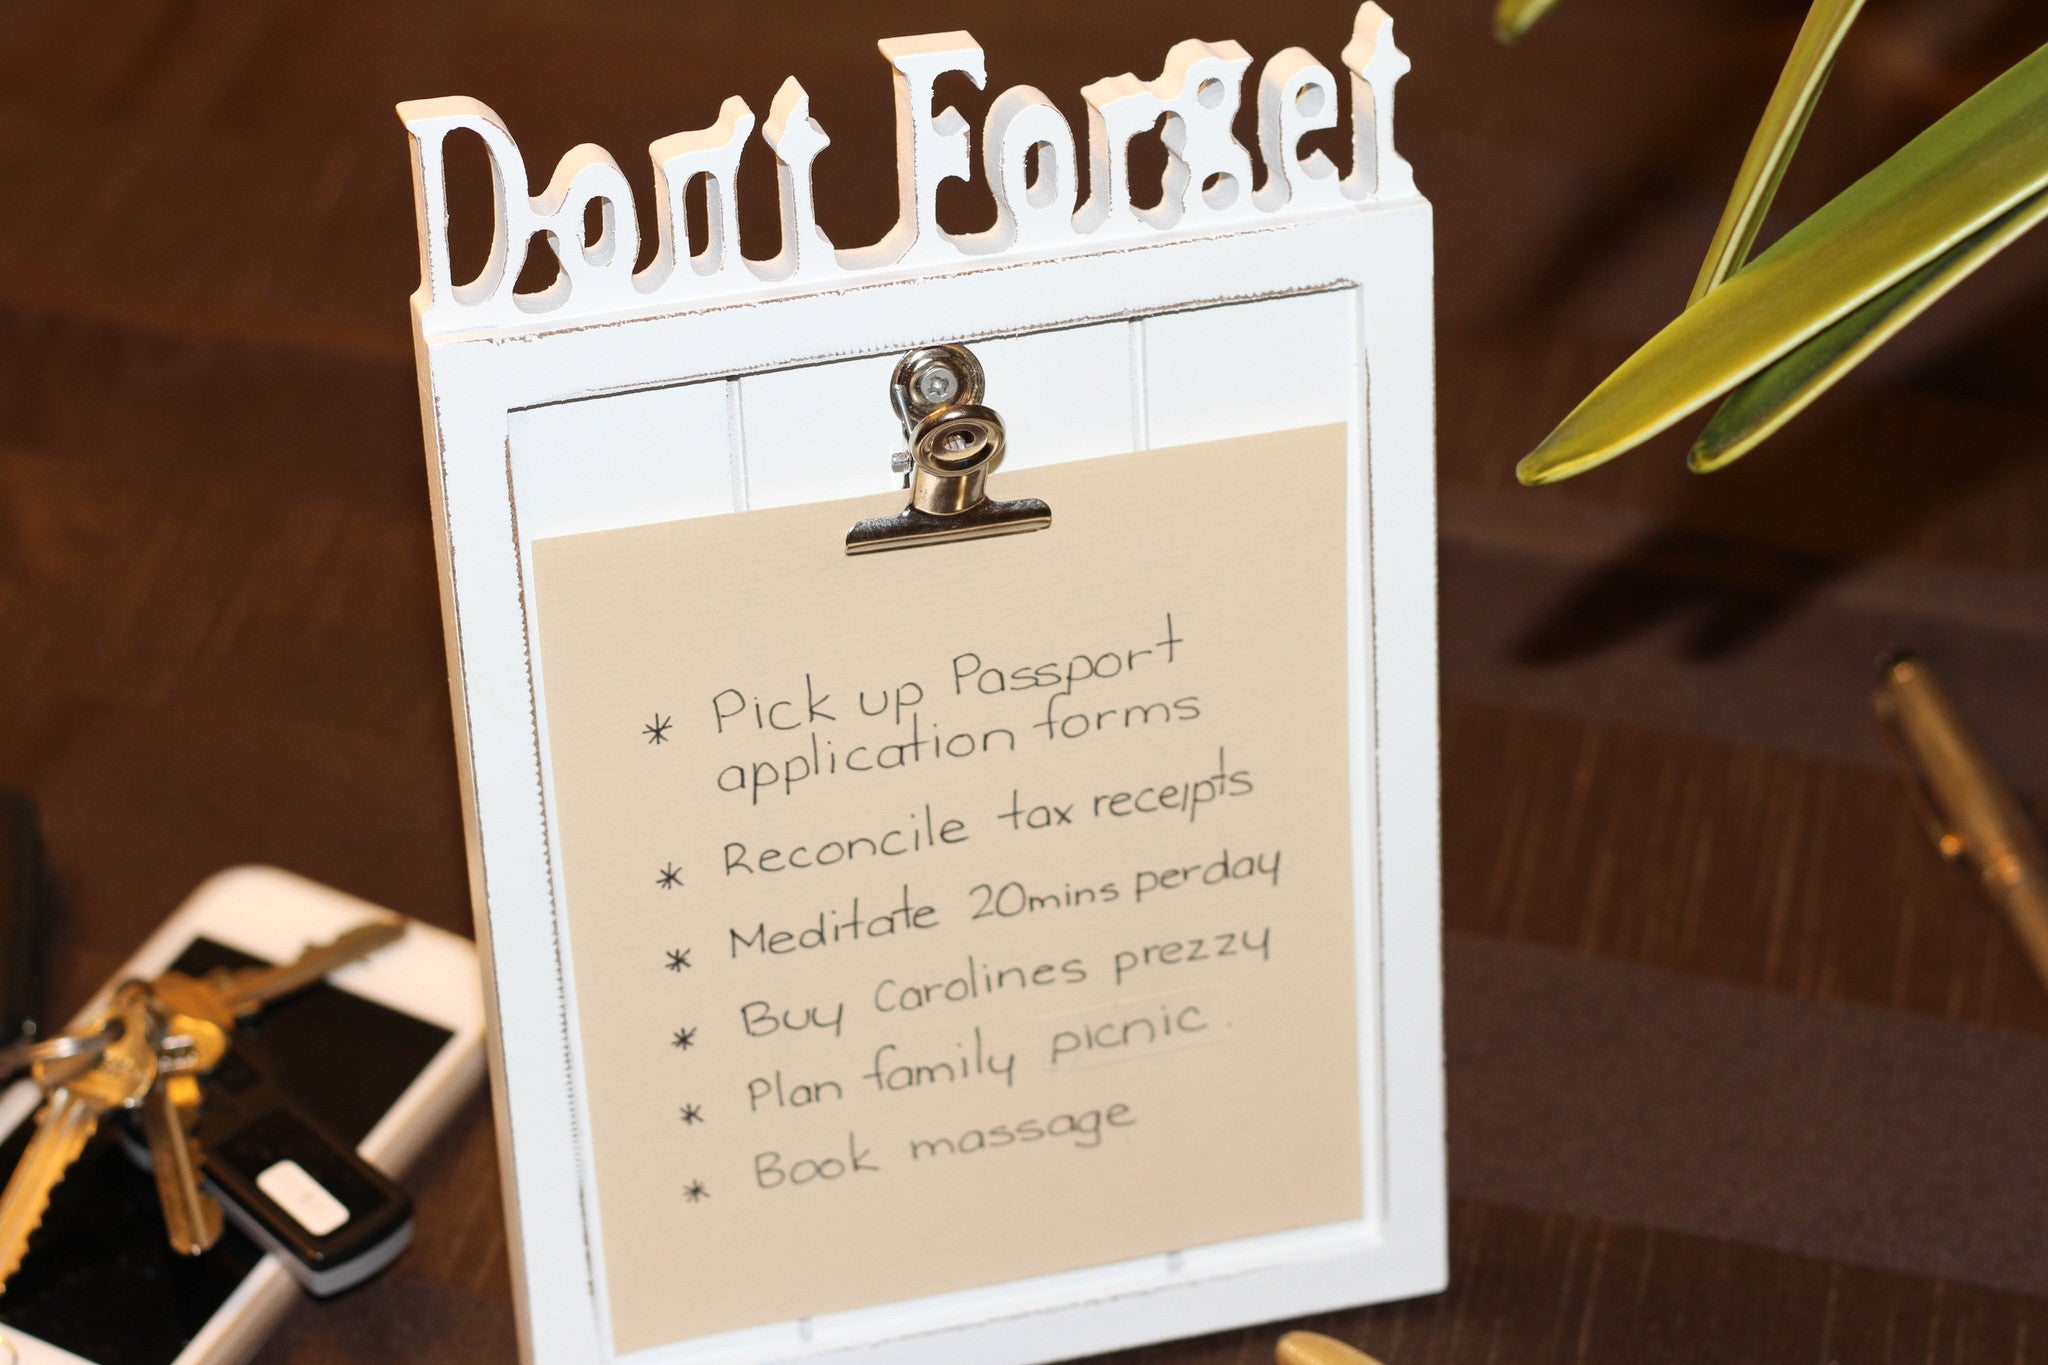 Don't Forget - notice board